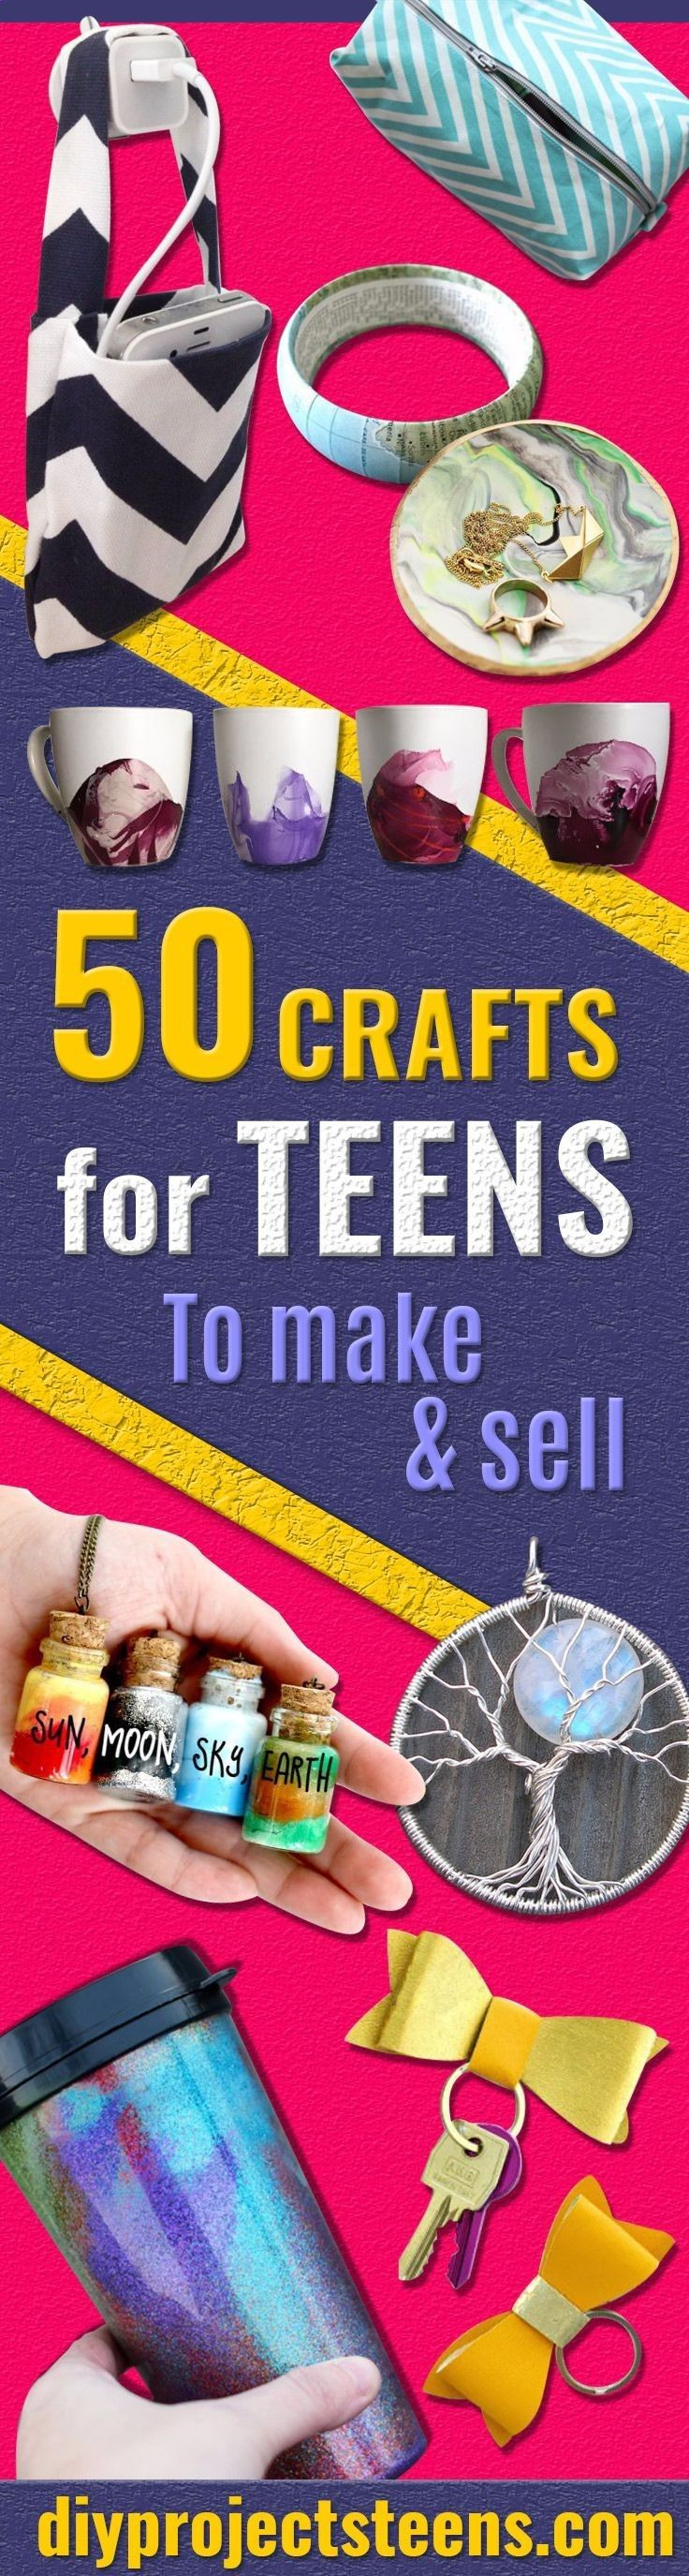 earn money online from home cool crafts for teens to make and sell